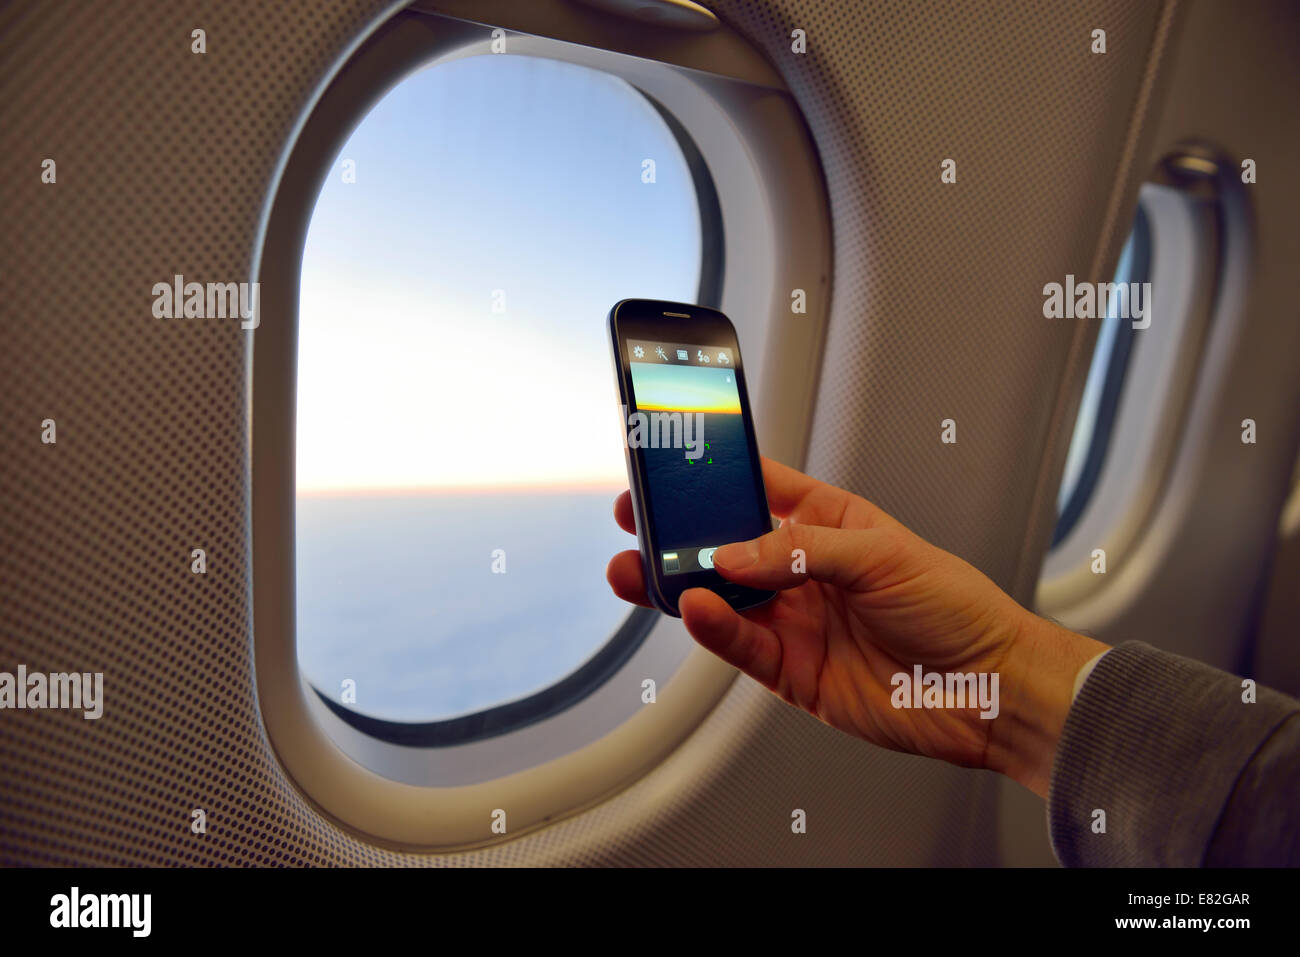 Man taking picture with smartphone at airplane window - Stock Image